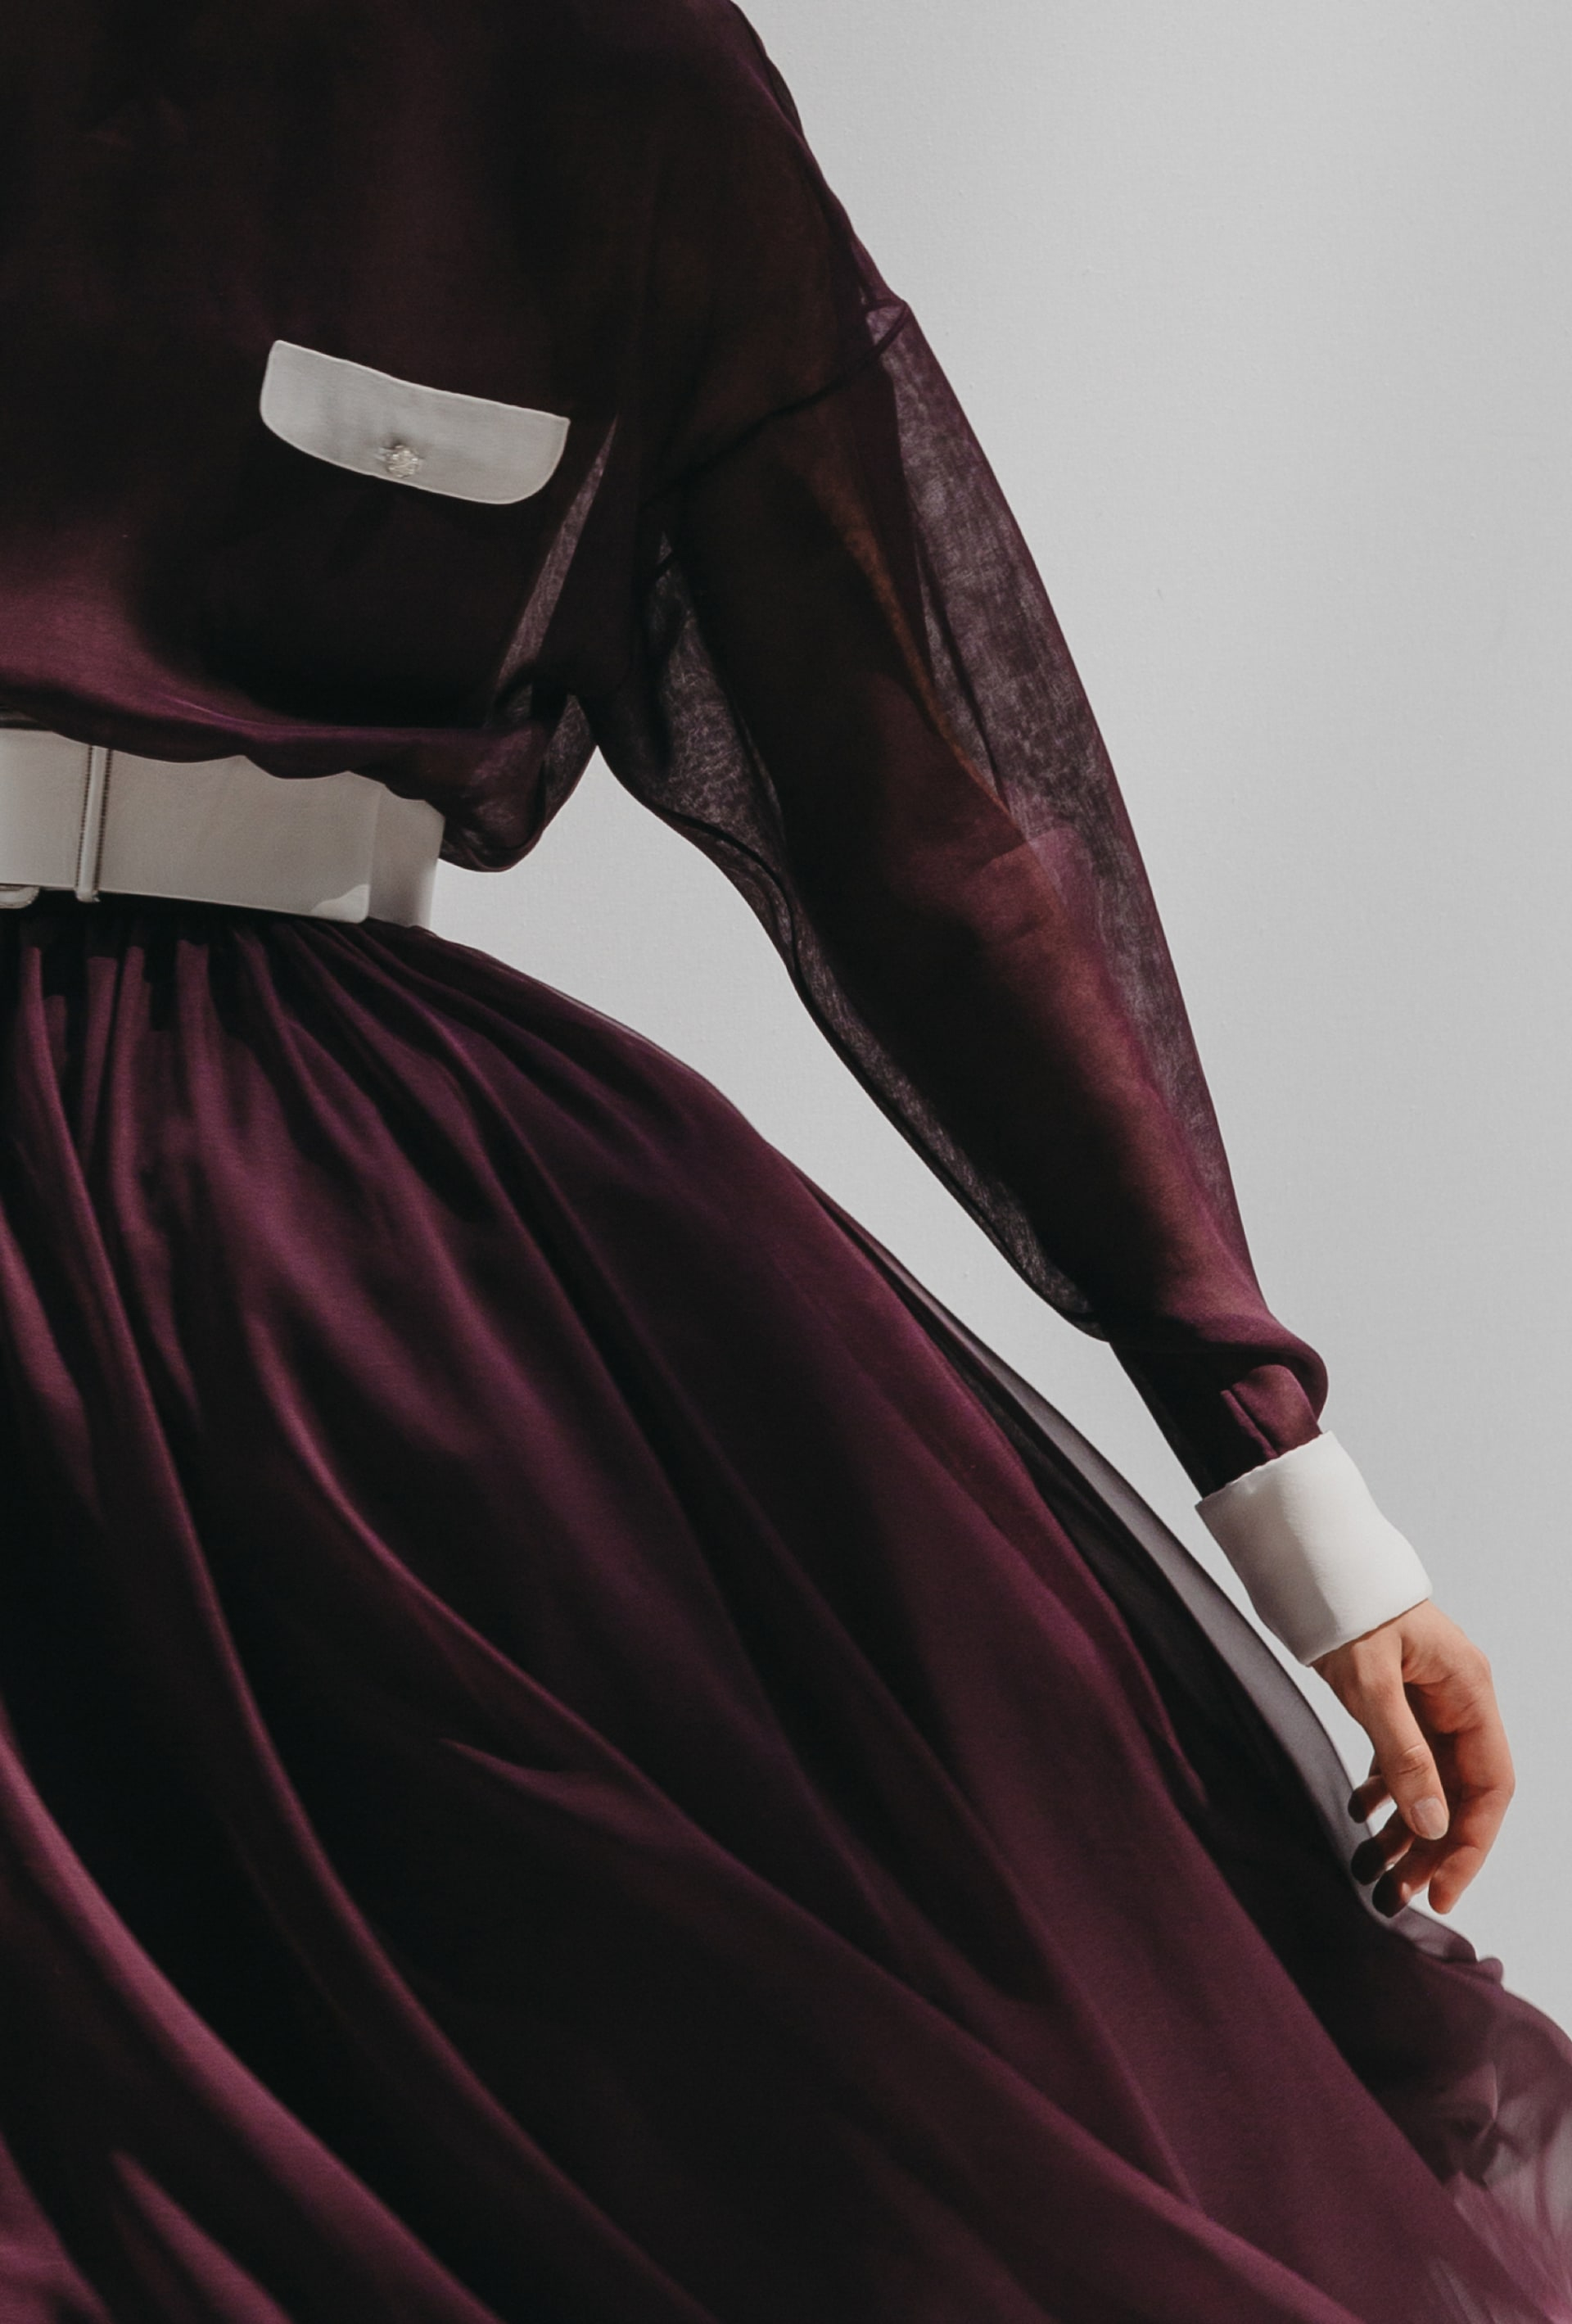 View 9 - Look 51 - Fall-Winter 2019/20 Haute-Couture - see full sized version